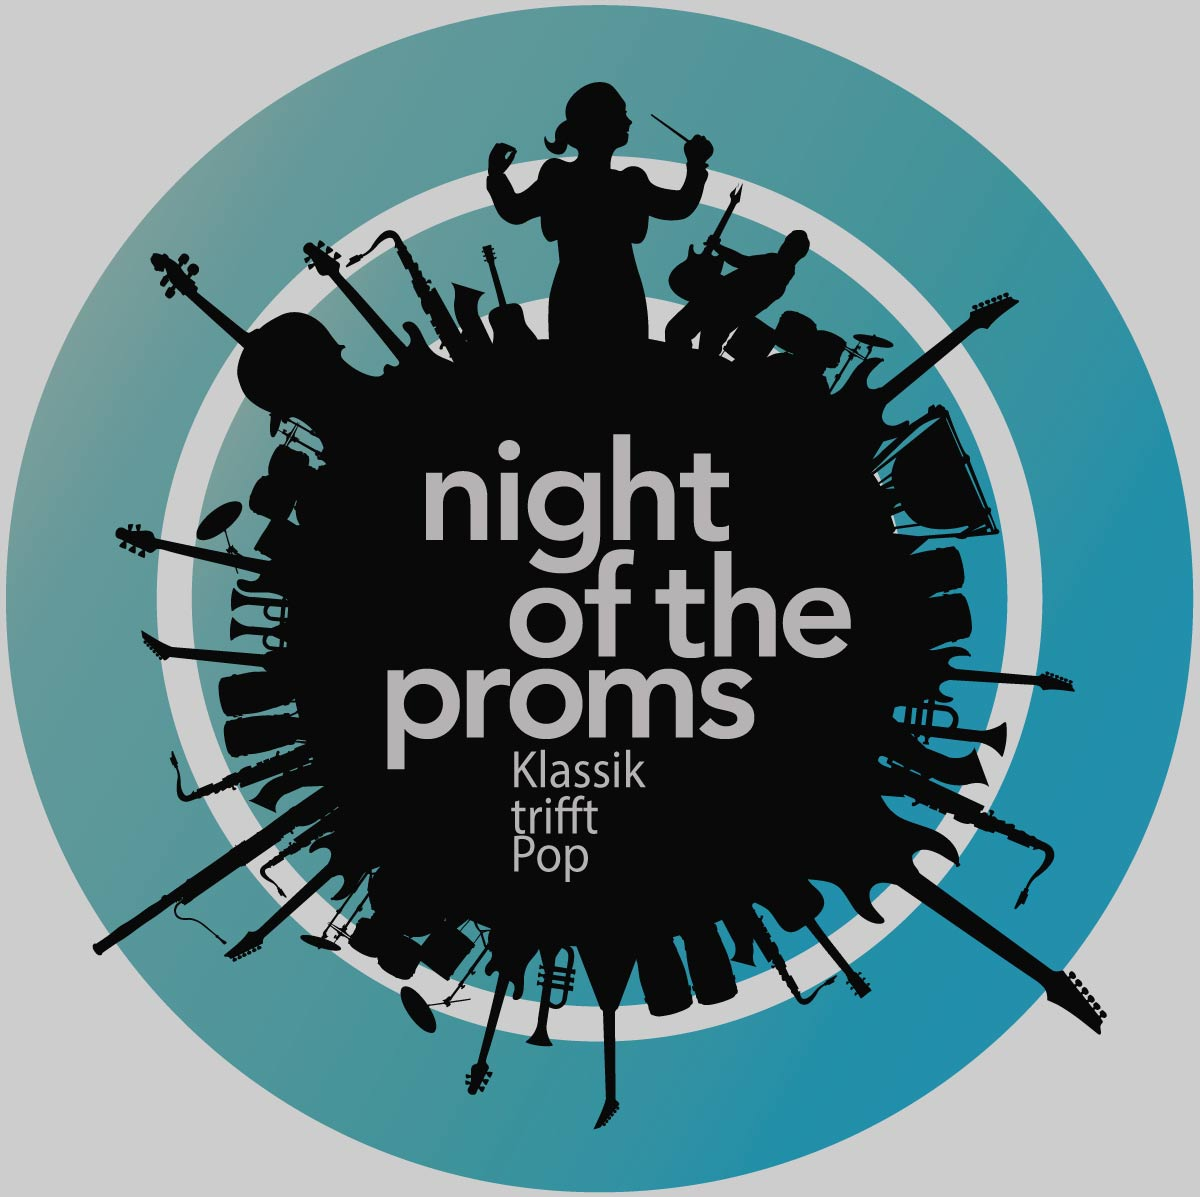 17 Shows – Night Of The Proms